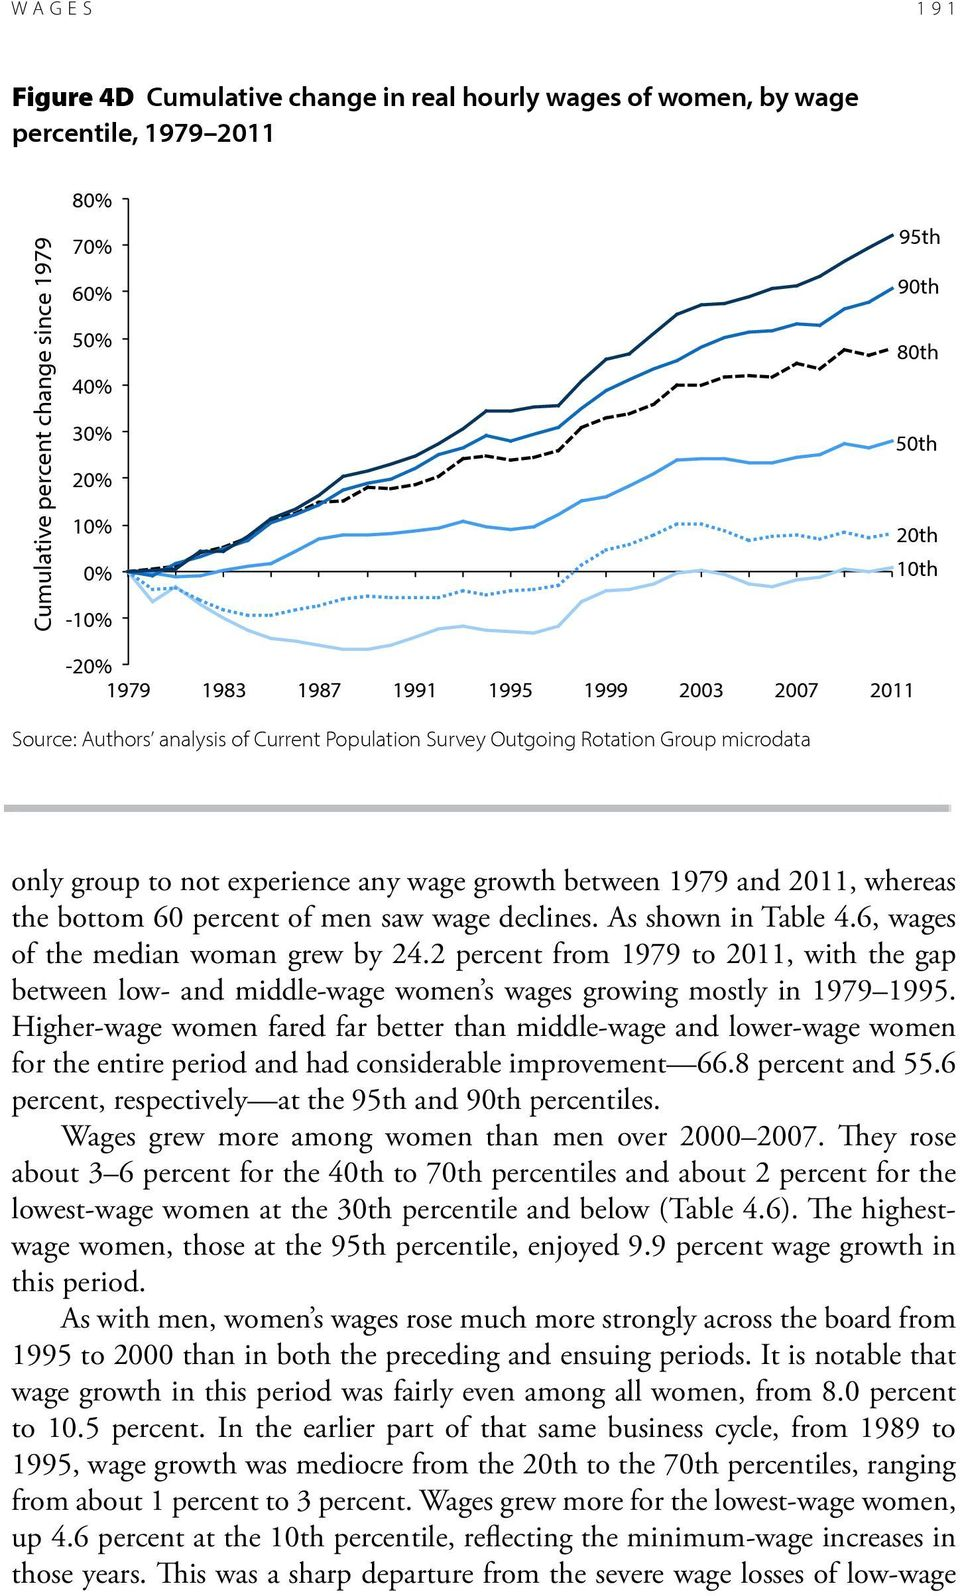 Higher-wage women fared far better than middle-wage and lower-wage women for the entire period and had considerable improvement 66.8 percent and 55.